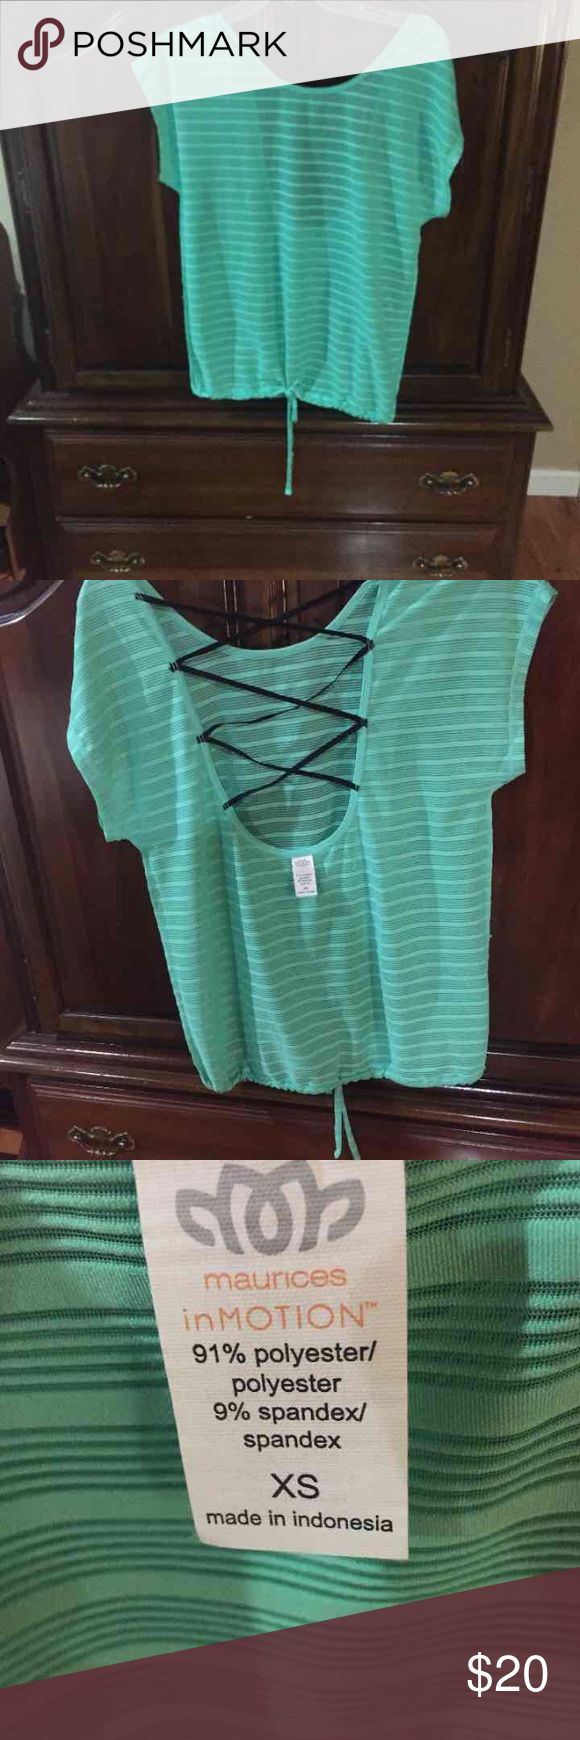 Maurice mint green top XS Beautiful NWOT mint green top. Size XS super cute on. Great for work outs or running errands. Maurices Tops Tees - Short Sleeve